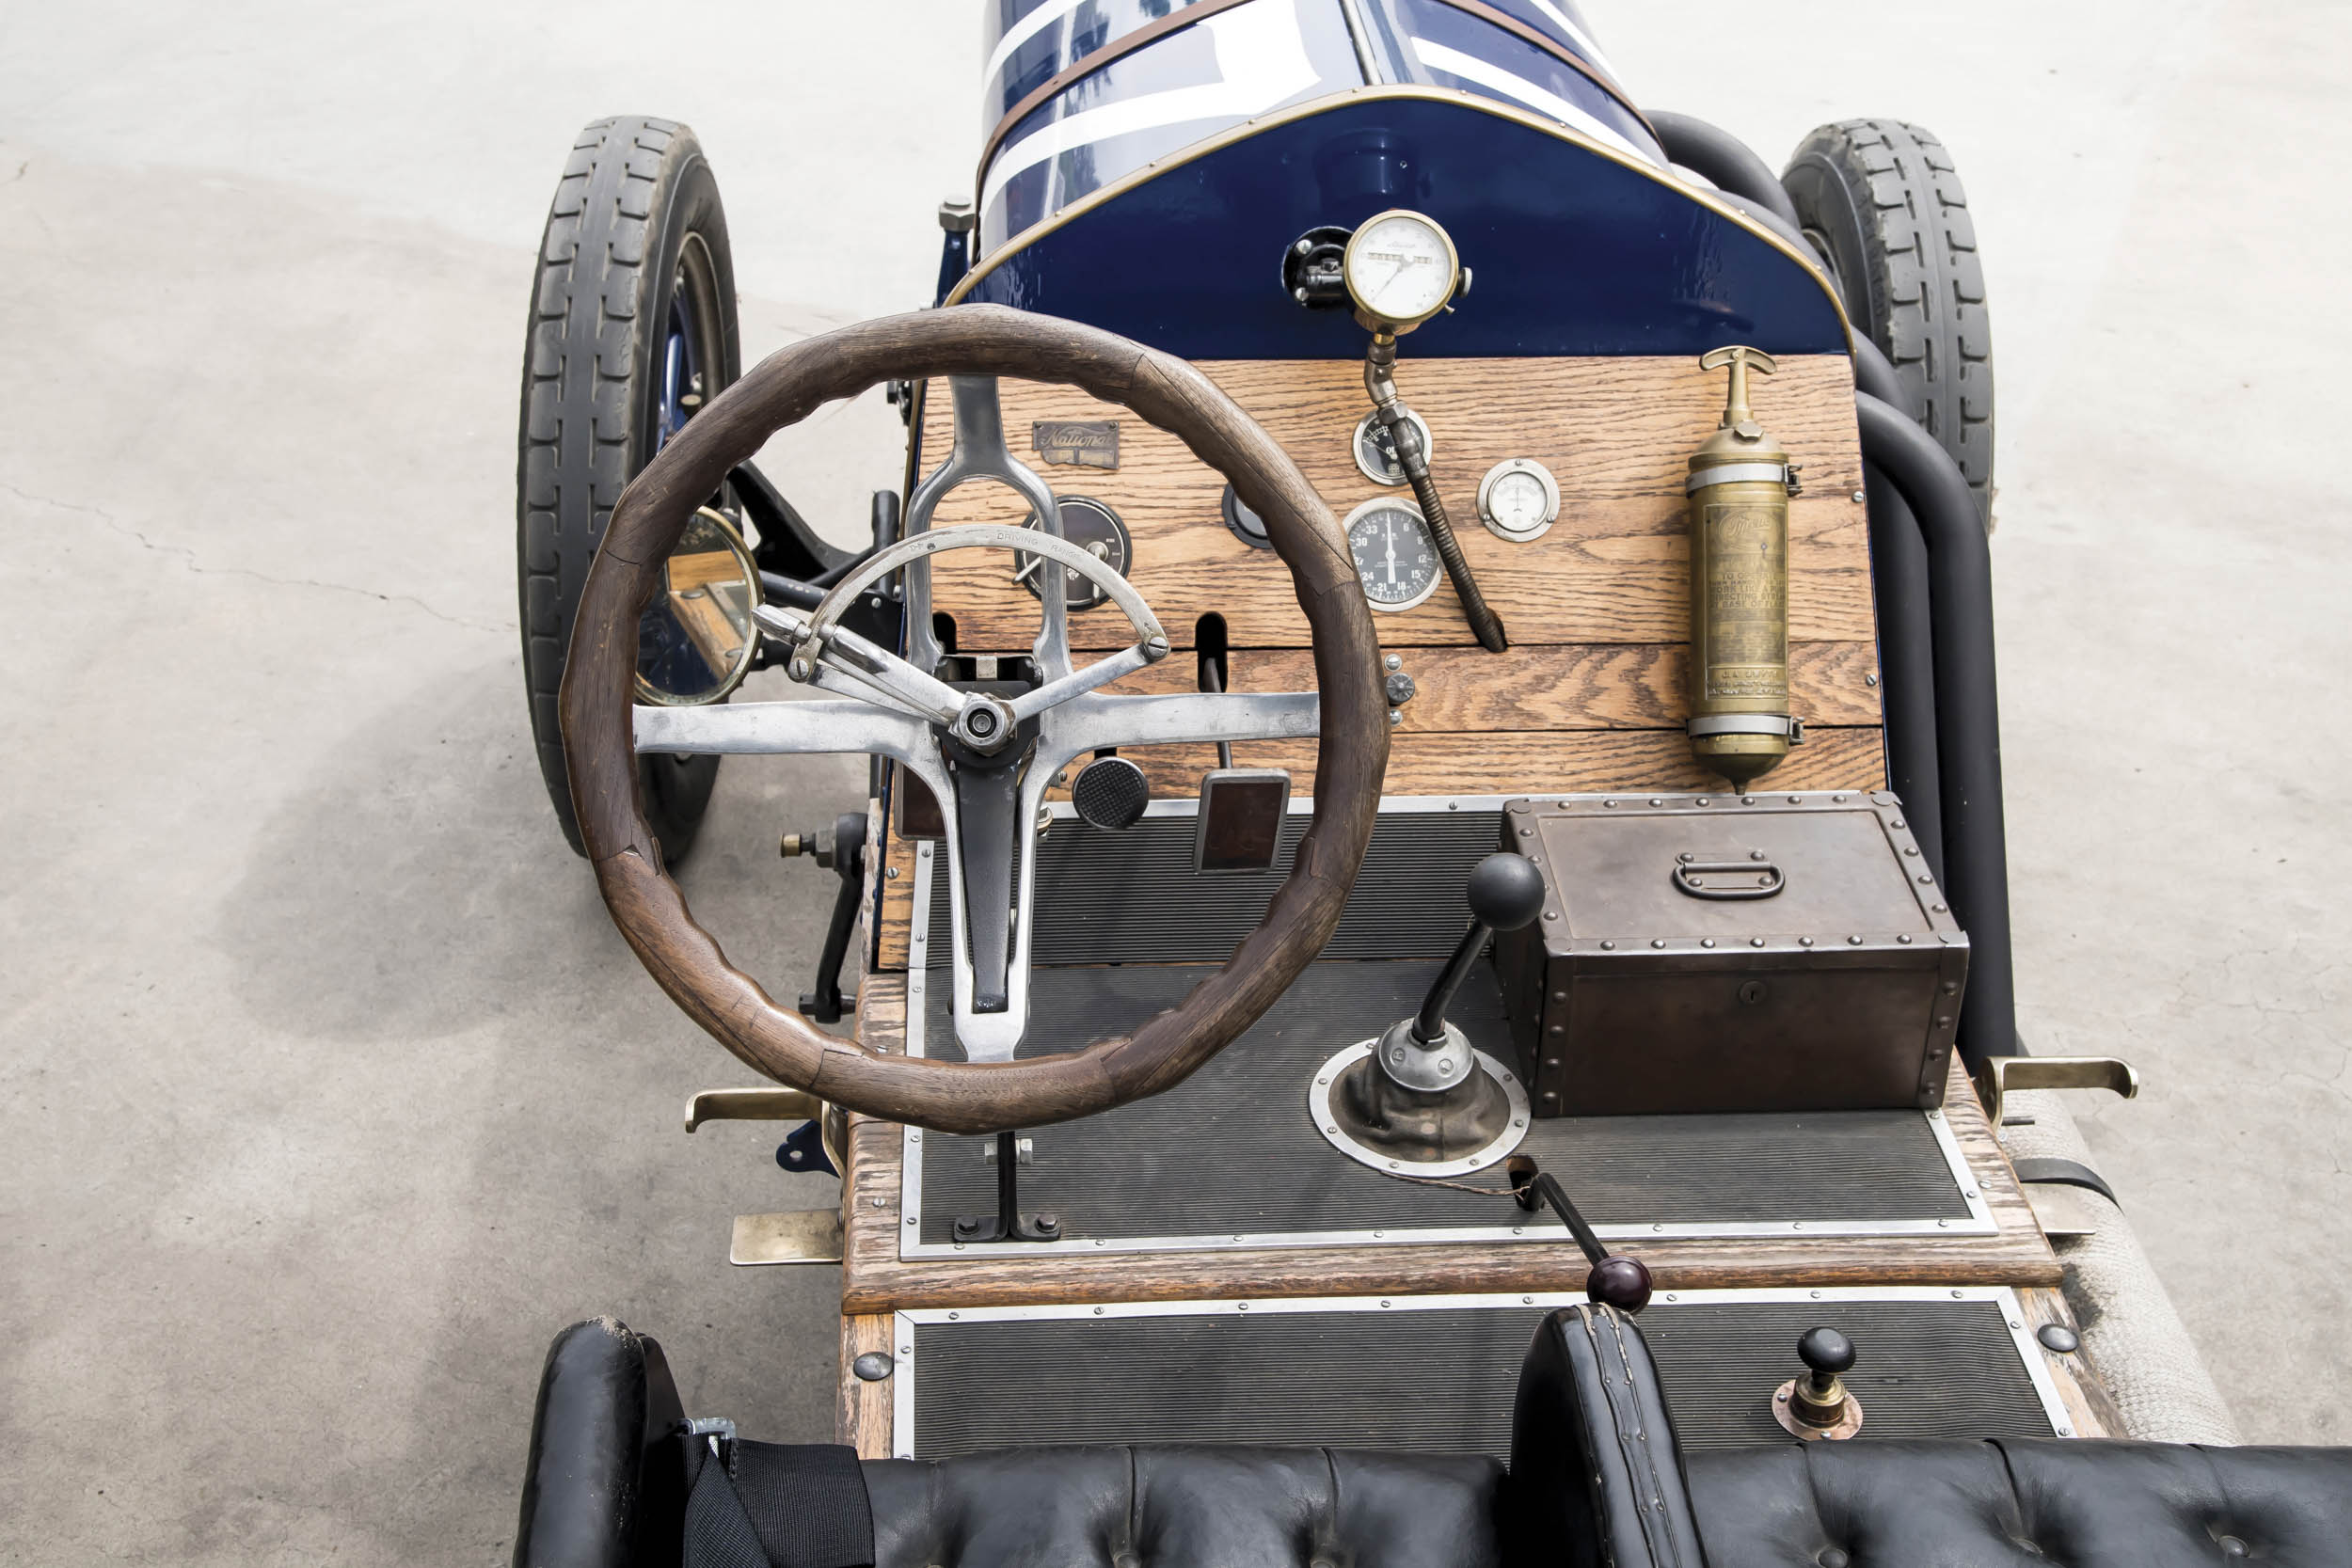 The old-time cockpit of a 1916 National includes a box for tools and a fire bottle. One of the mechanician's jobs is to periodically pump water into the thermosiphon radiator.